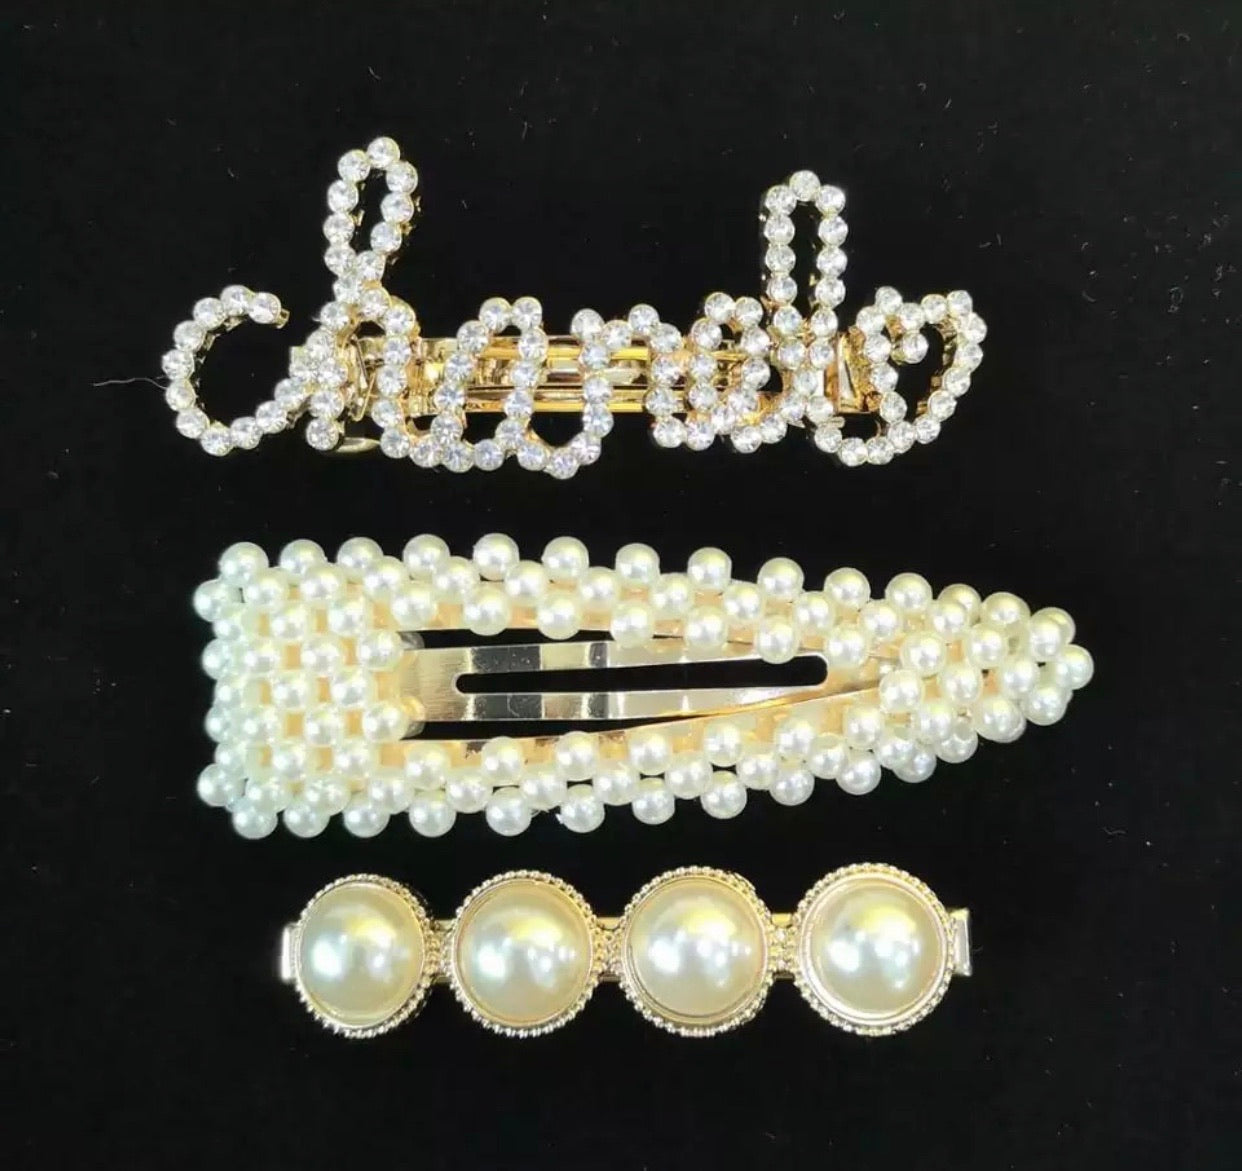 Chanel Love Hairpin set